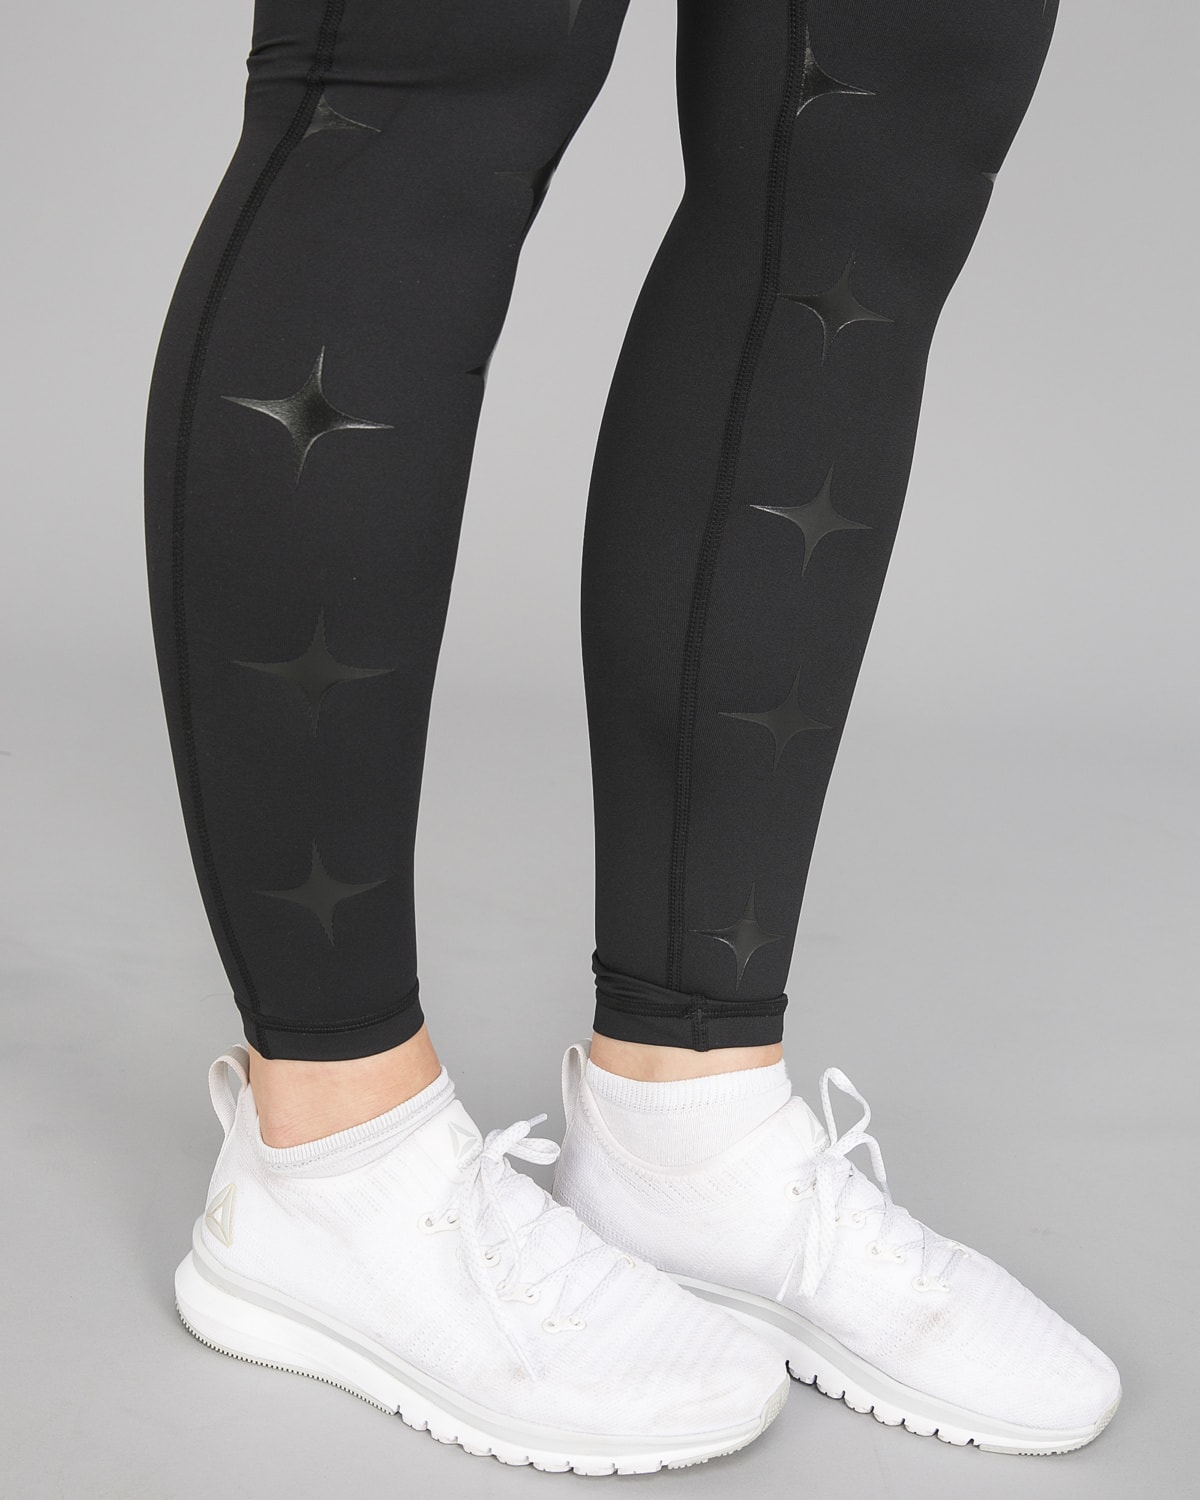 We Are Fit Star Black Tights7